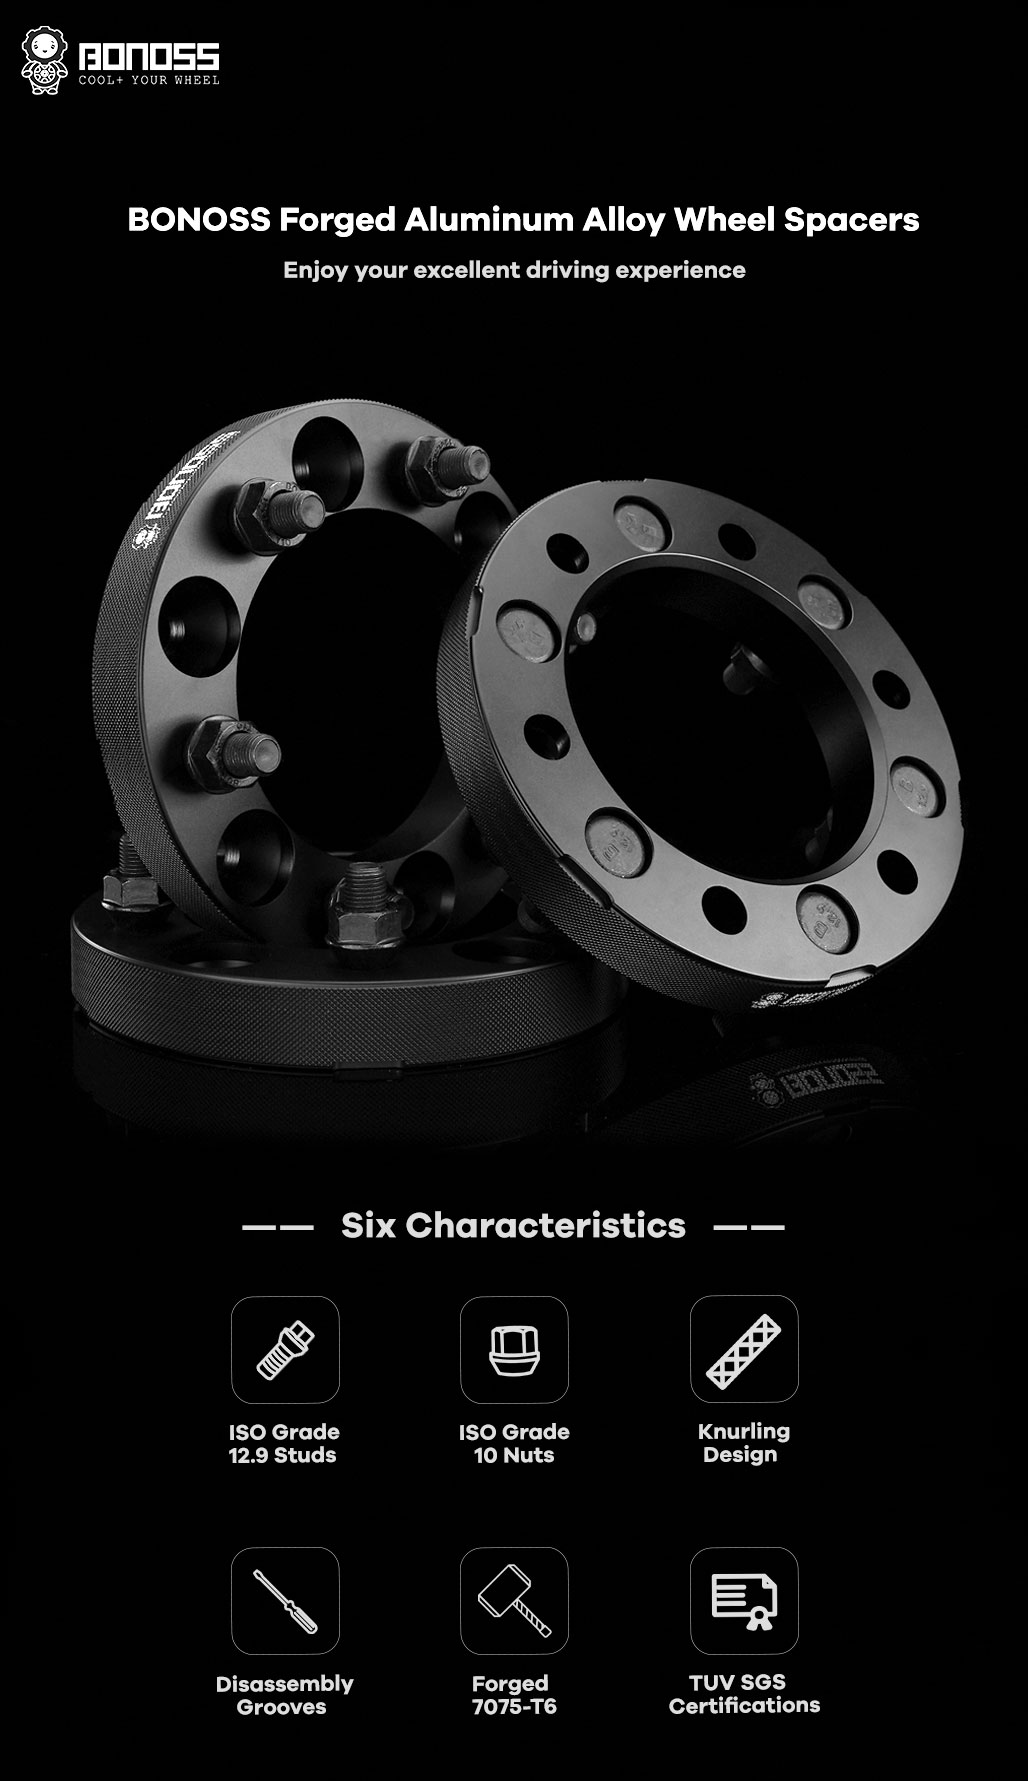 BONOSS-forged-active-cooling-wheel-spacer-for-nissan-Patrol-Y61-6x139.7-110-12x1.25-7075t6-by-grace-1